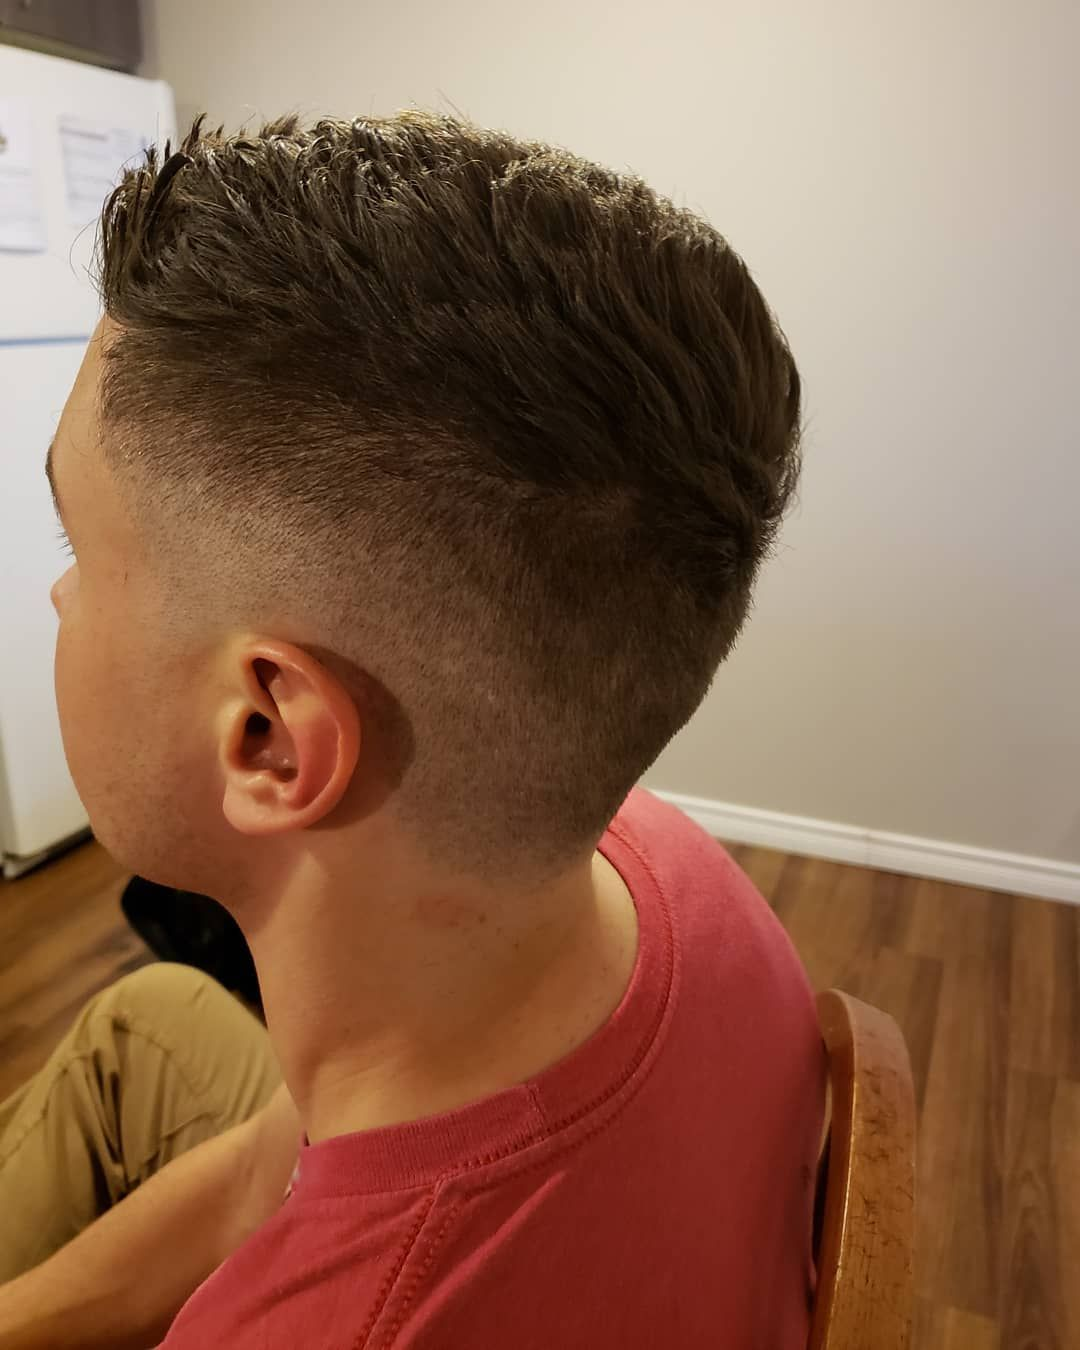 New the best hairstyles for men in the world hairstyles for